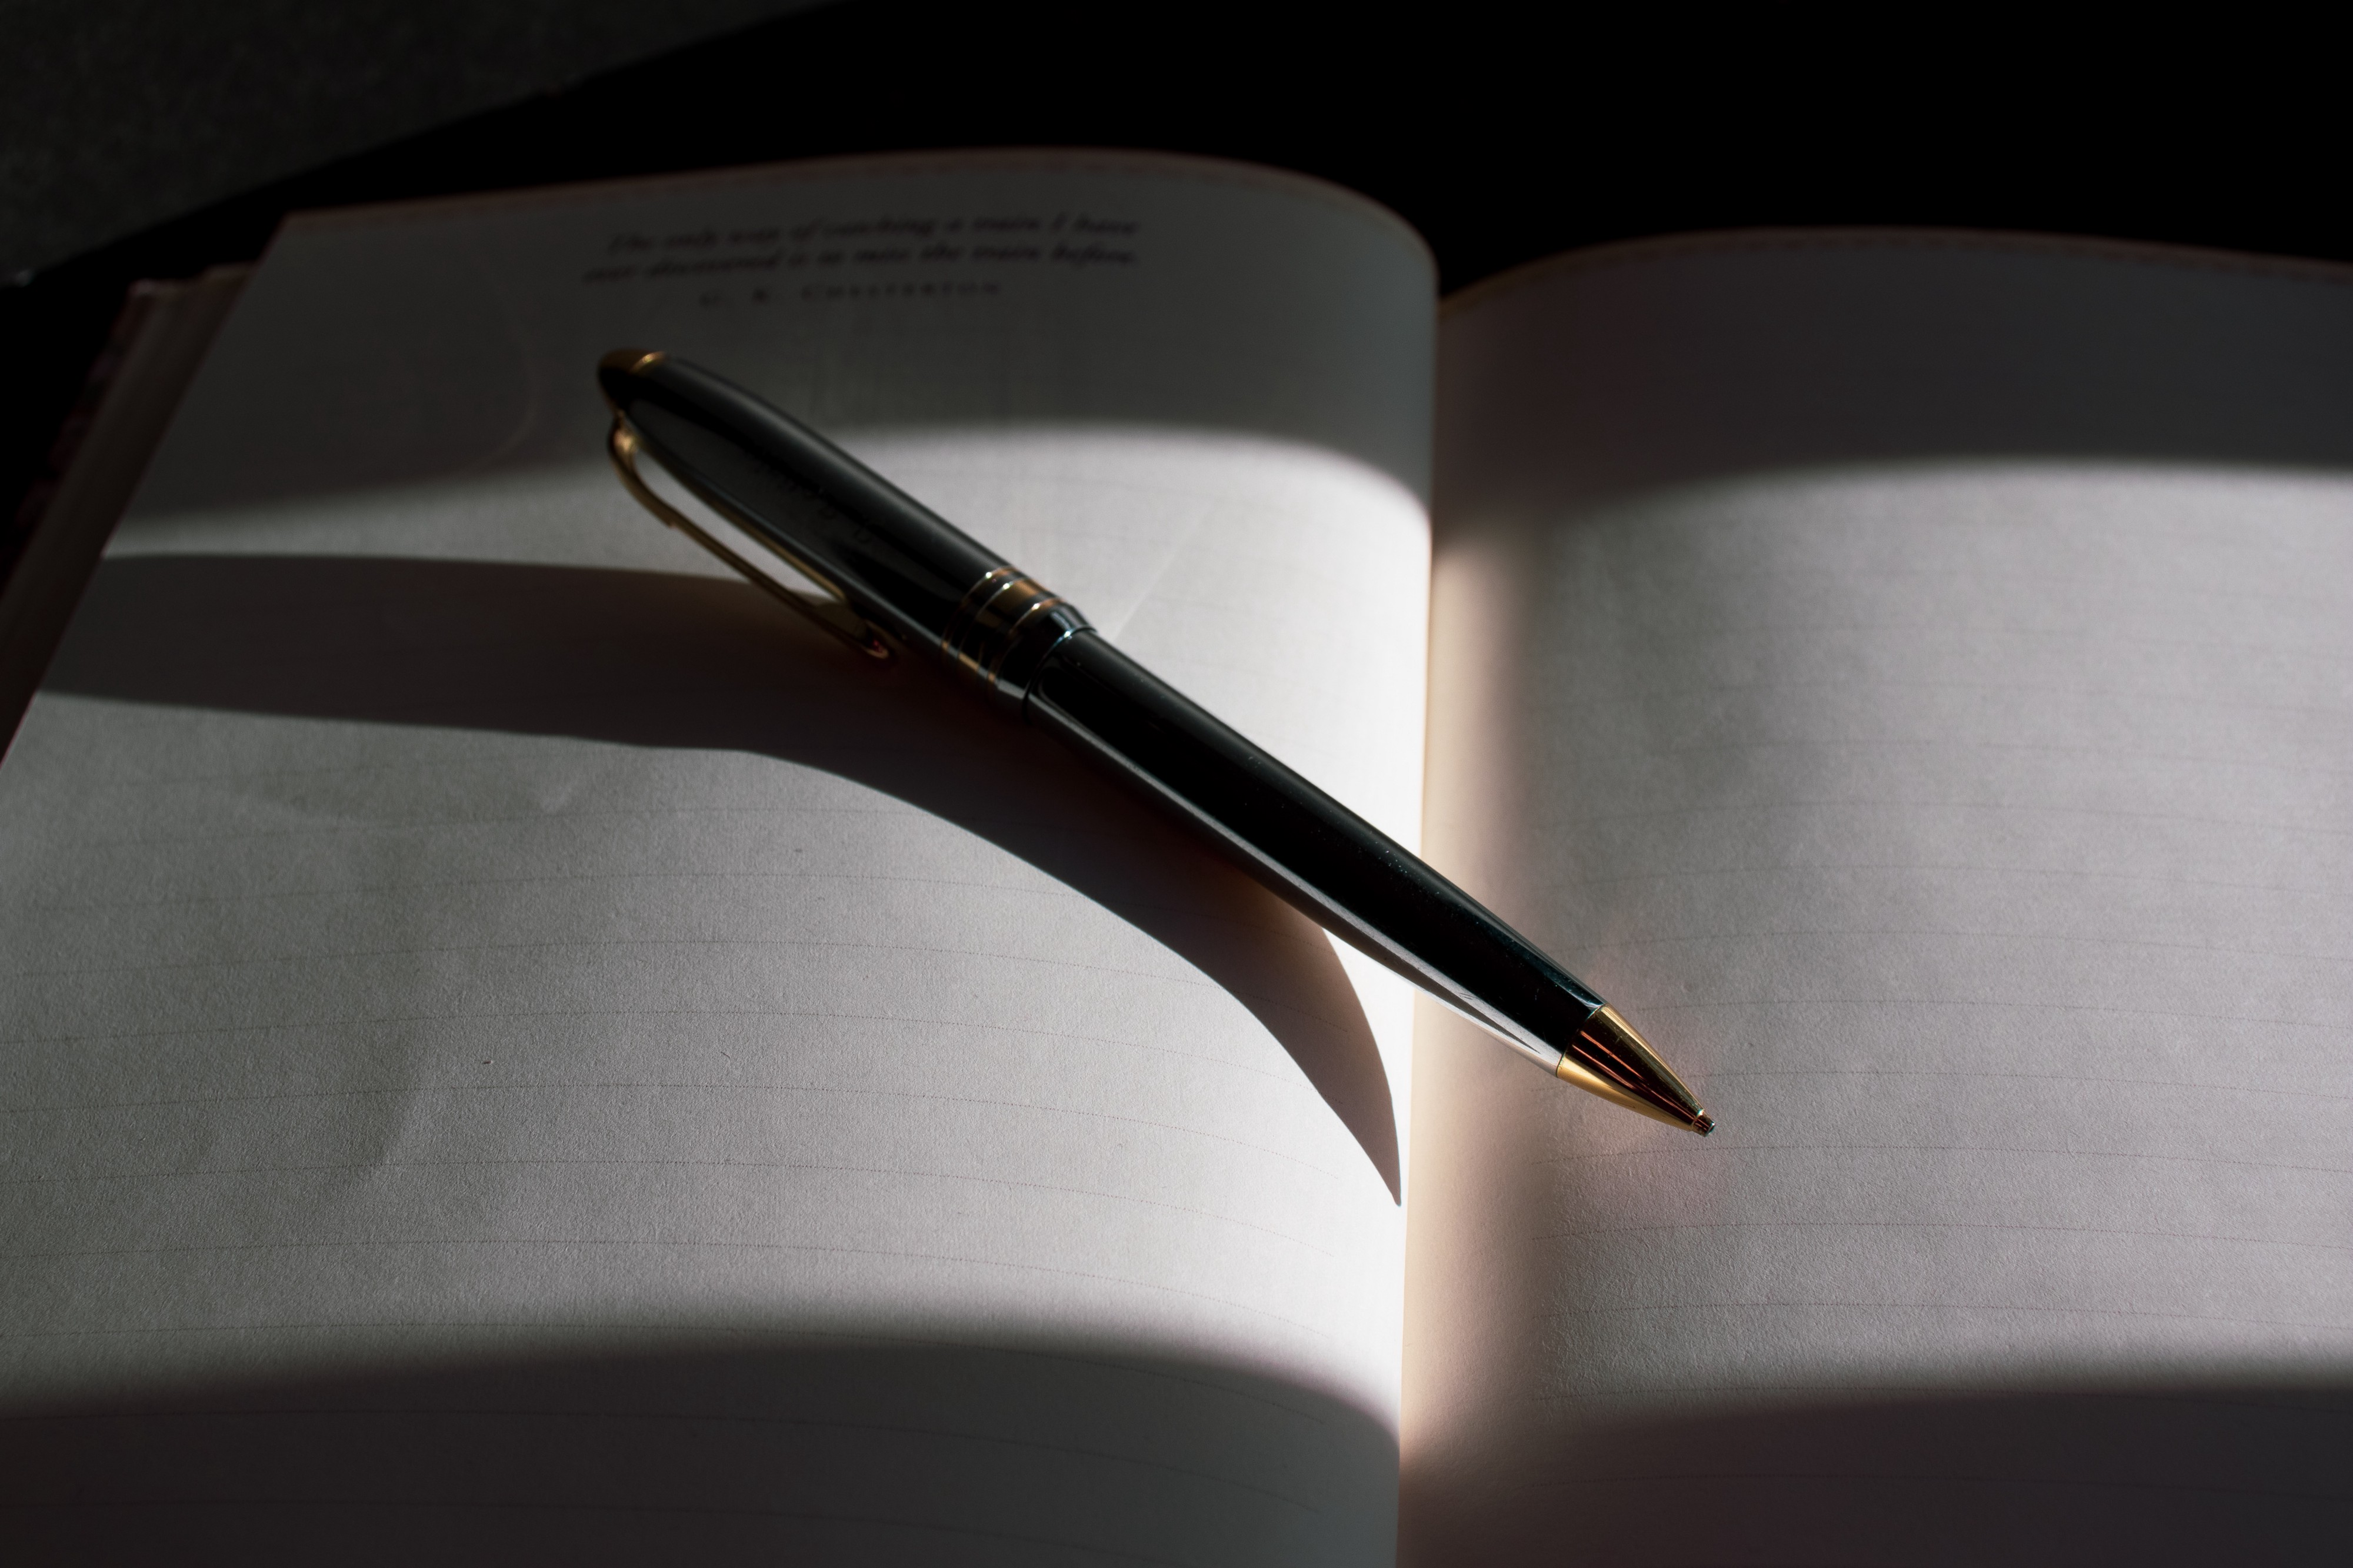 Blank page of a journal with pen laying on top